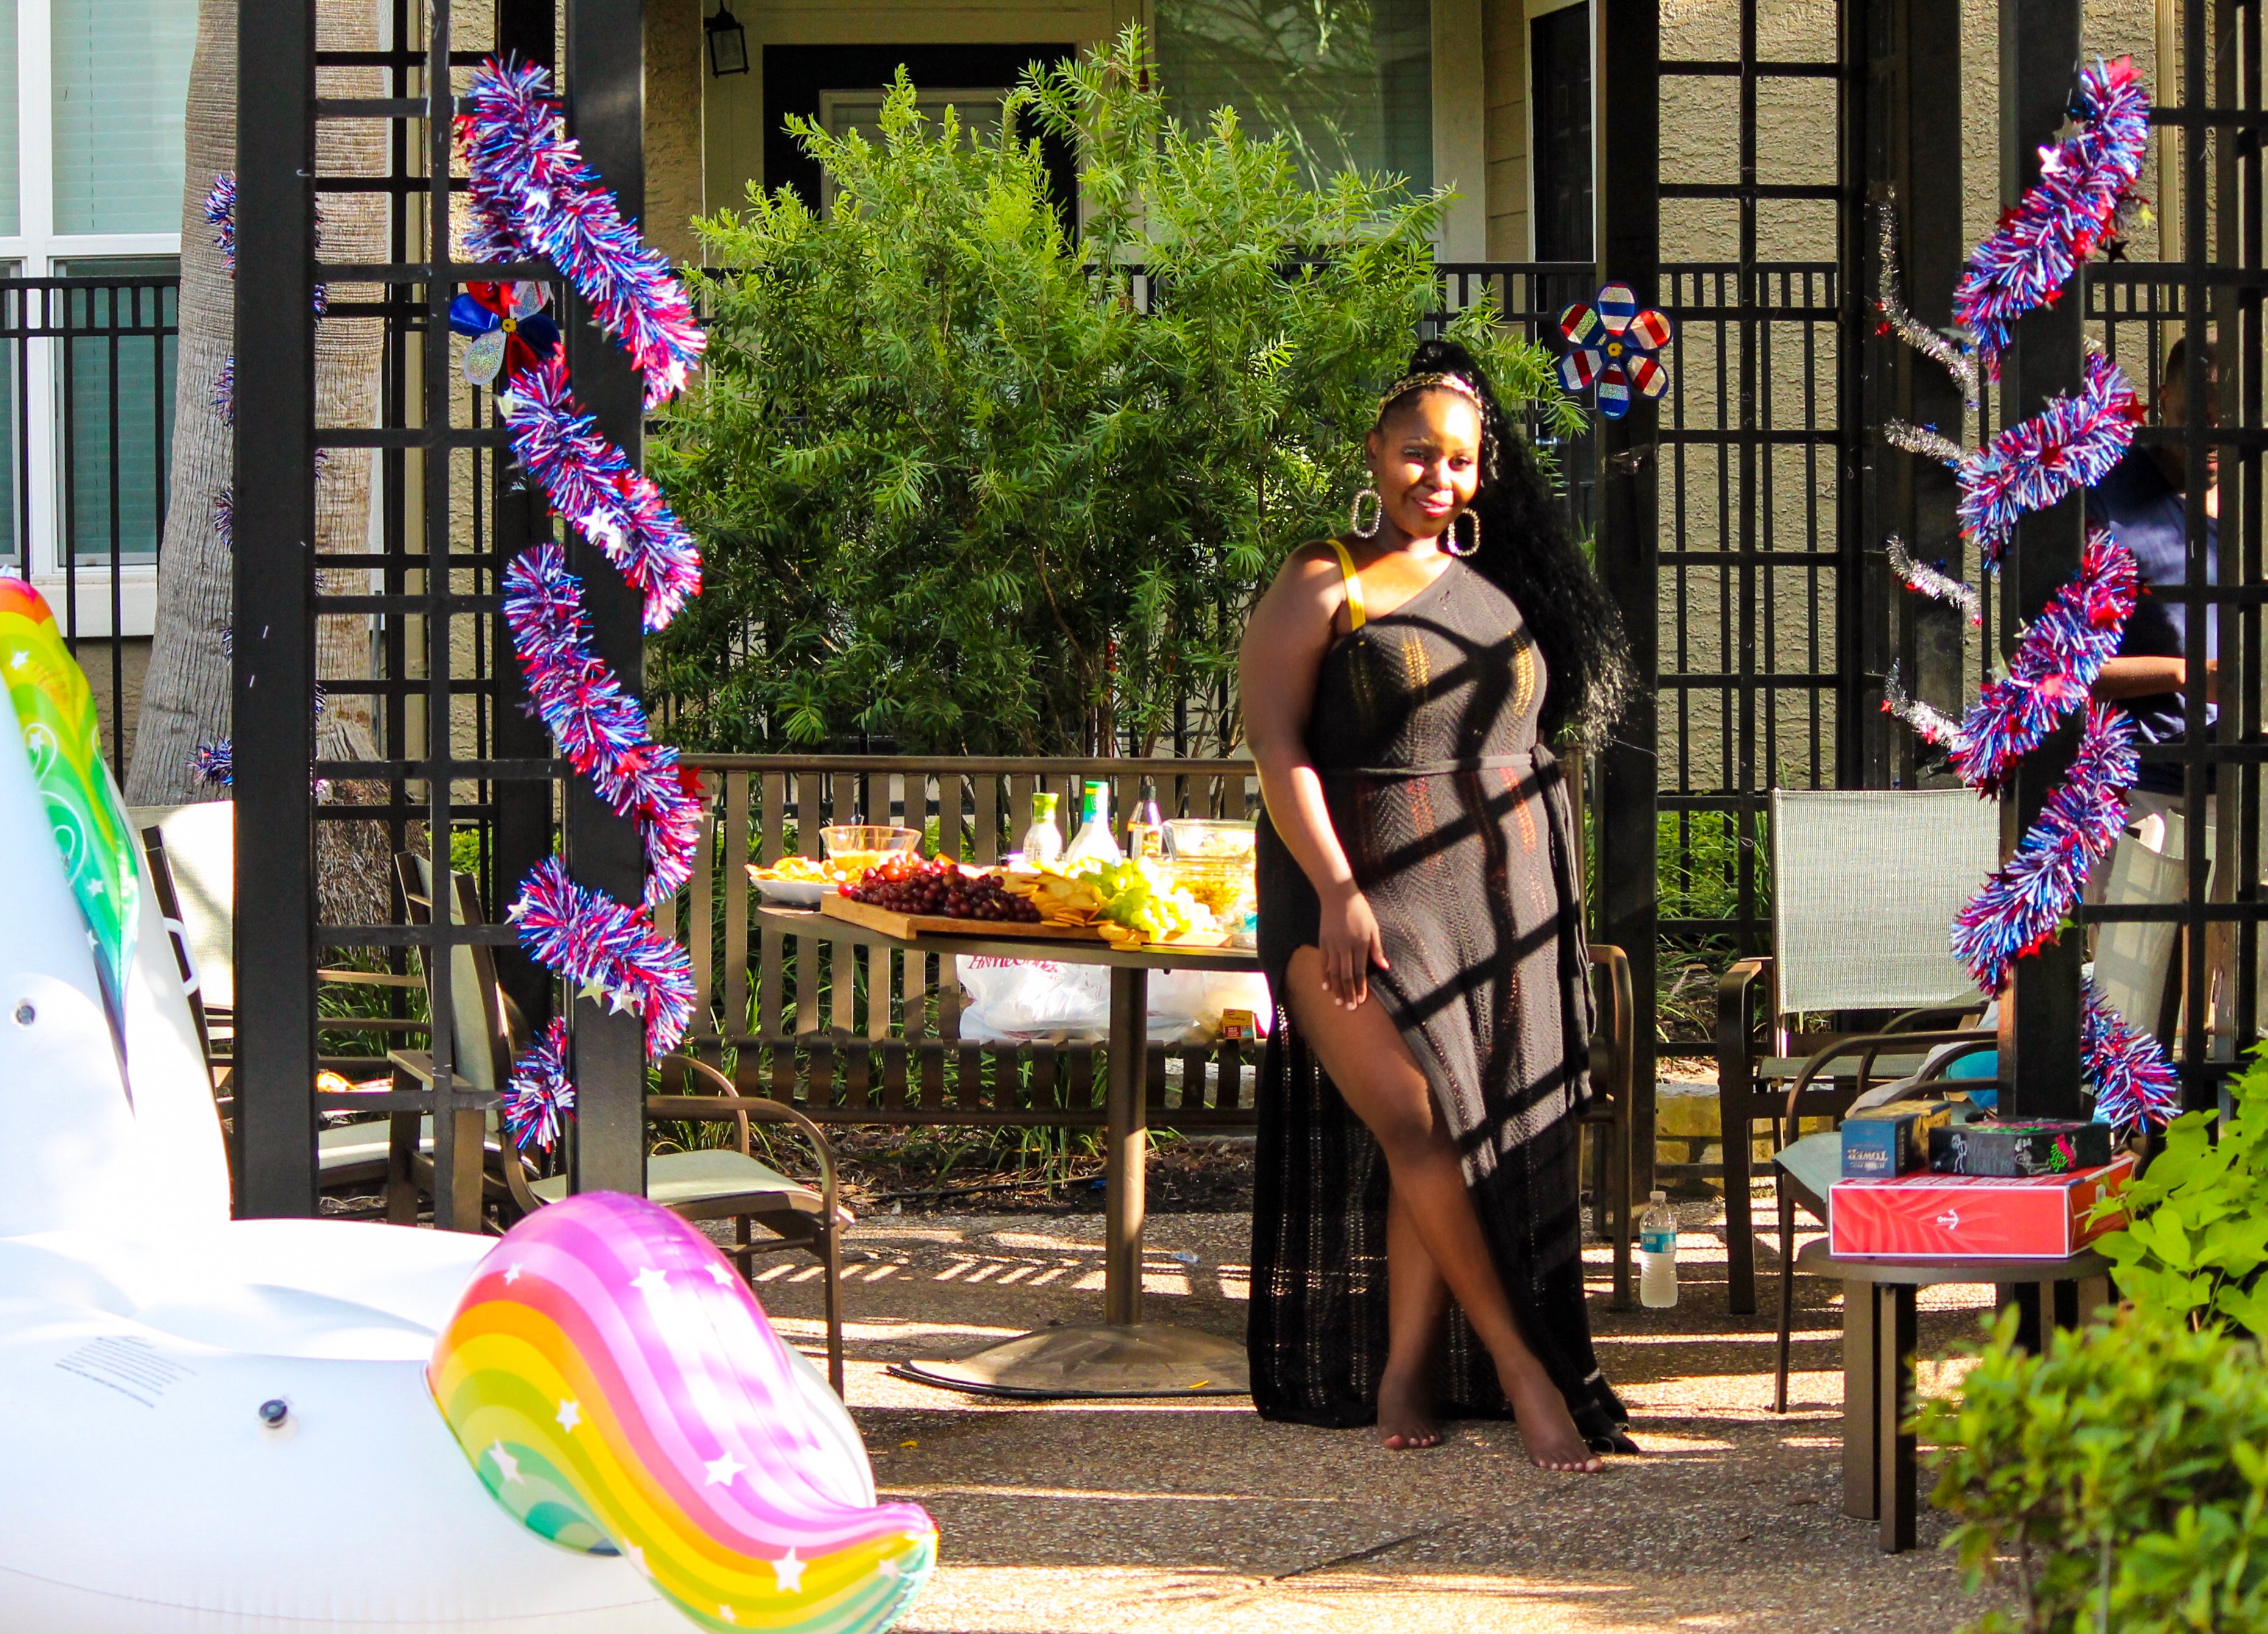 party tips, curvy, fashion lifestyle blog, boohoo knit dress, swimsuit, gabi fresh, swimsuits for all, summer party, mahbuba buba fabulous birthday party, pool party, party ideas, how to throw a pool party on a budget, dark skin, melanin, plus size bloggers, houston blogge, texas blogger, uganda blogger, beautiful ugandan girls, youma, city tycoon daughter, kampala rich and famous, fourth of july, 4th july